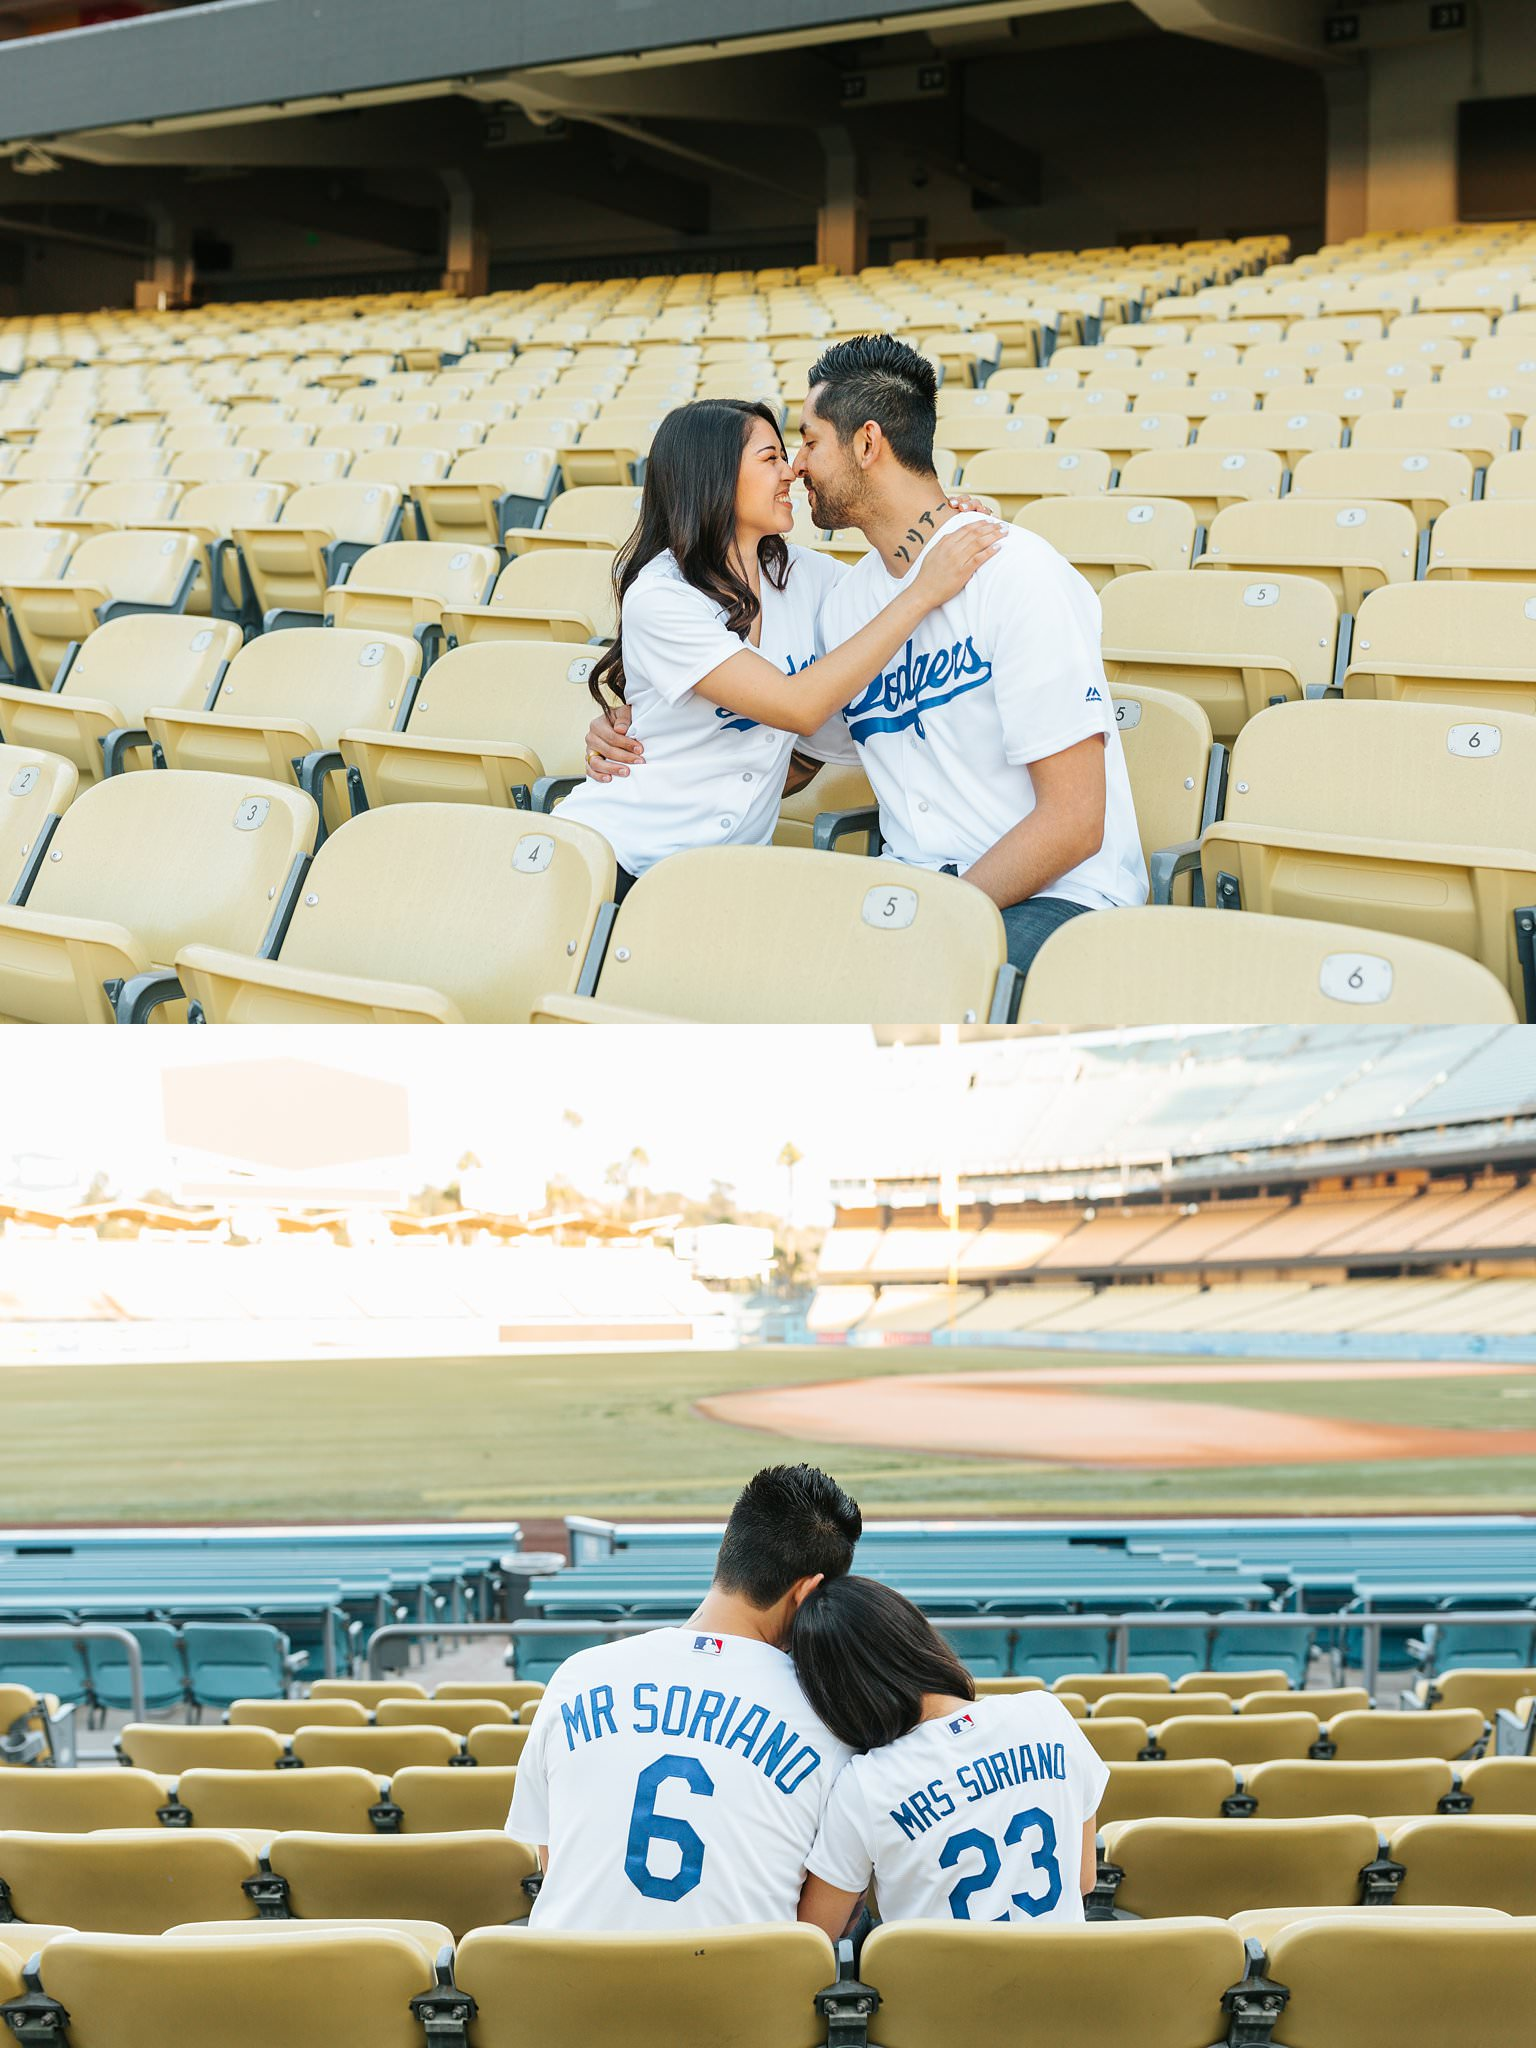 Love in the seats at Dodger Stadium - Dodger Stadium Engagement Photography - http://brittneyhannonphotography.com